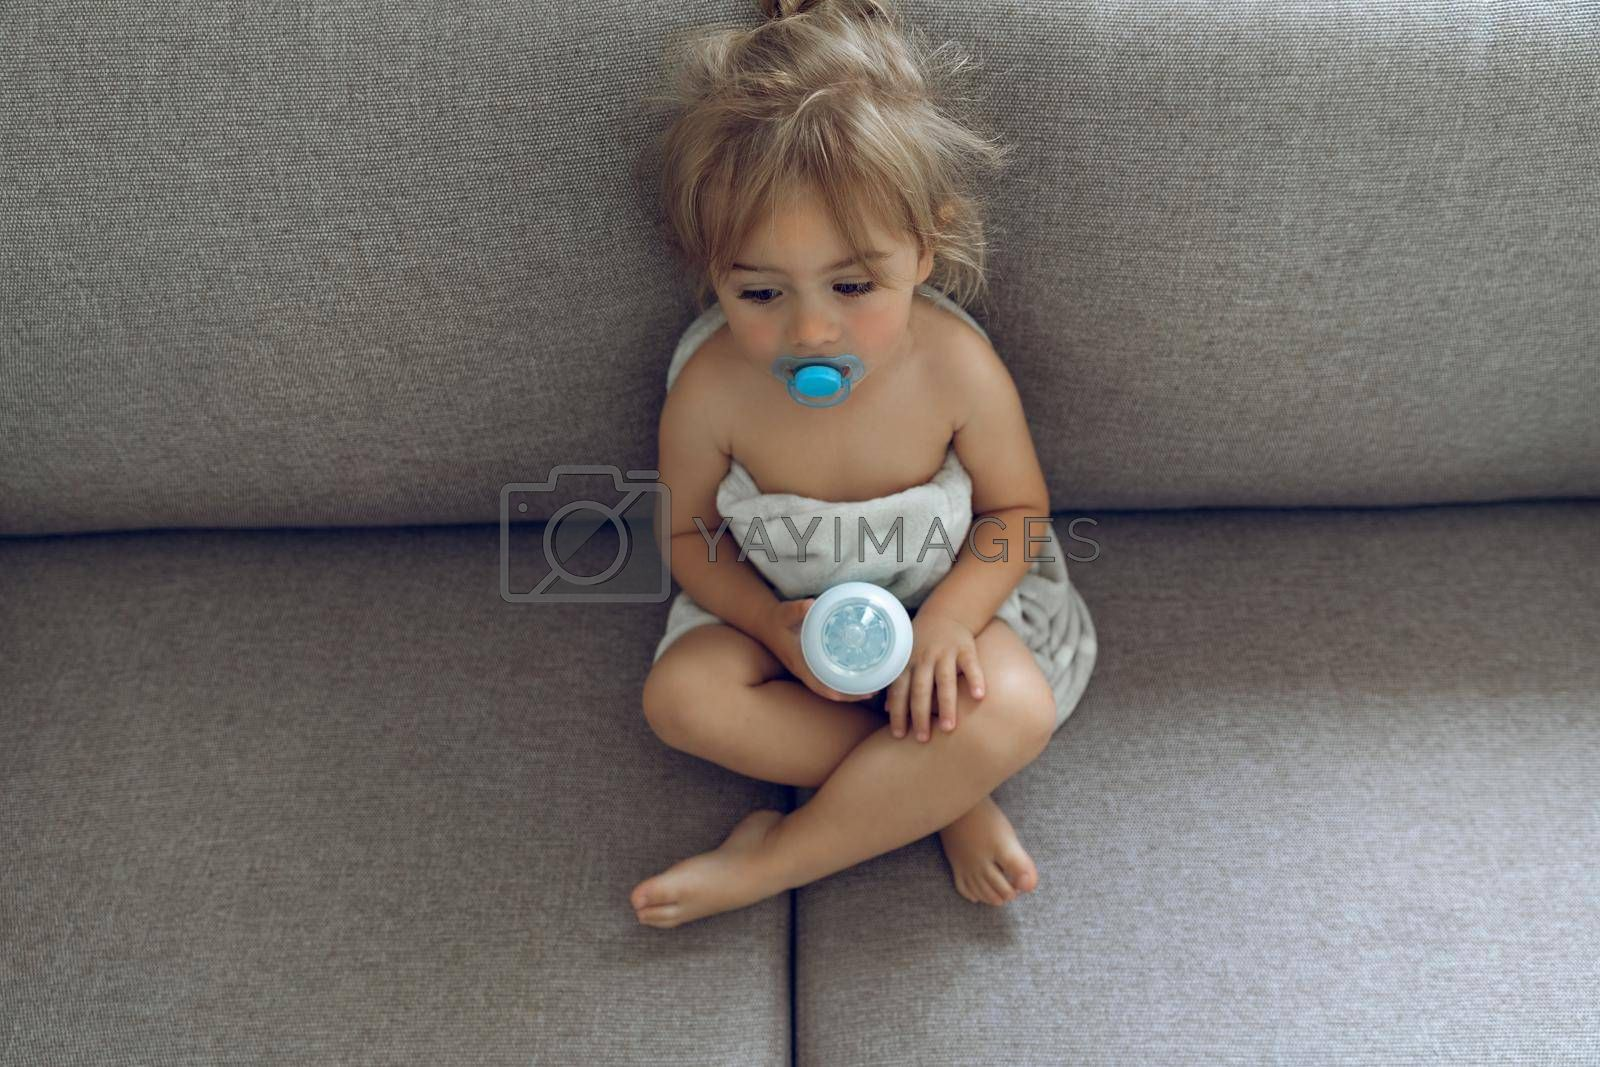 Sweet Adorable Child With Pacifier in the Mouth Sitting on the Sofa at Home Holding Baby Bottle with Milk. Time to Eat. Happy Healthy Childhood.